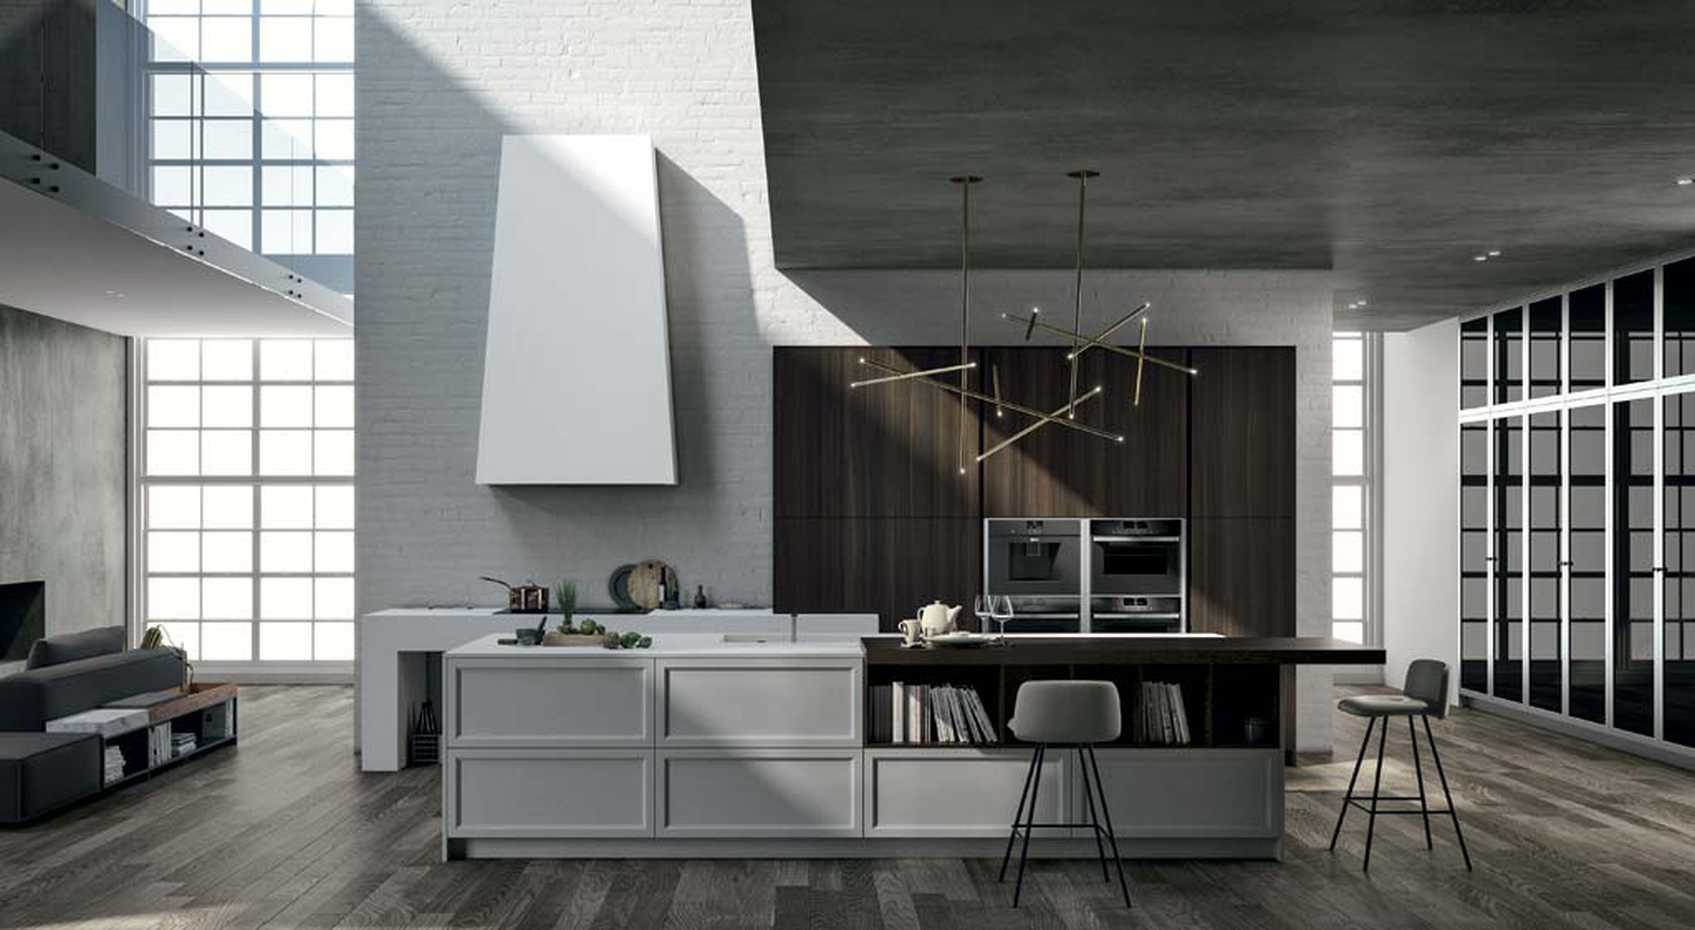 Vogue by Doimo Cucine product image 5